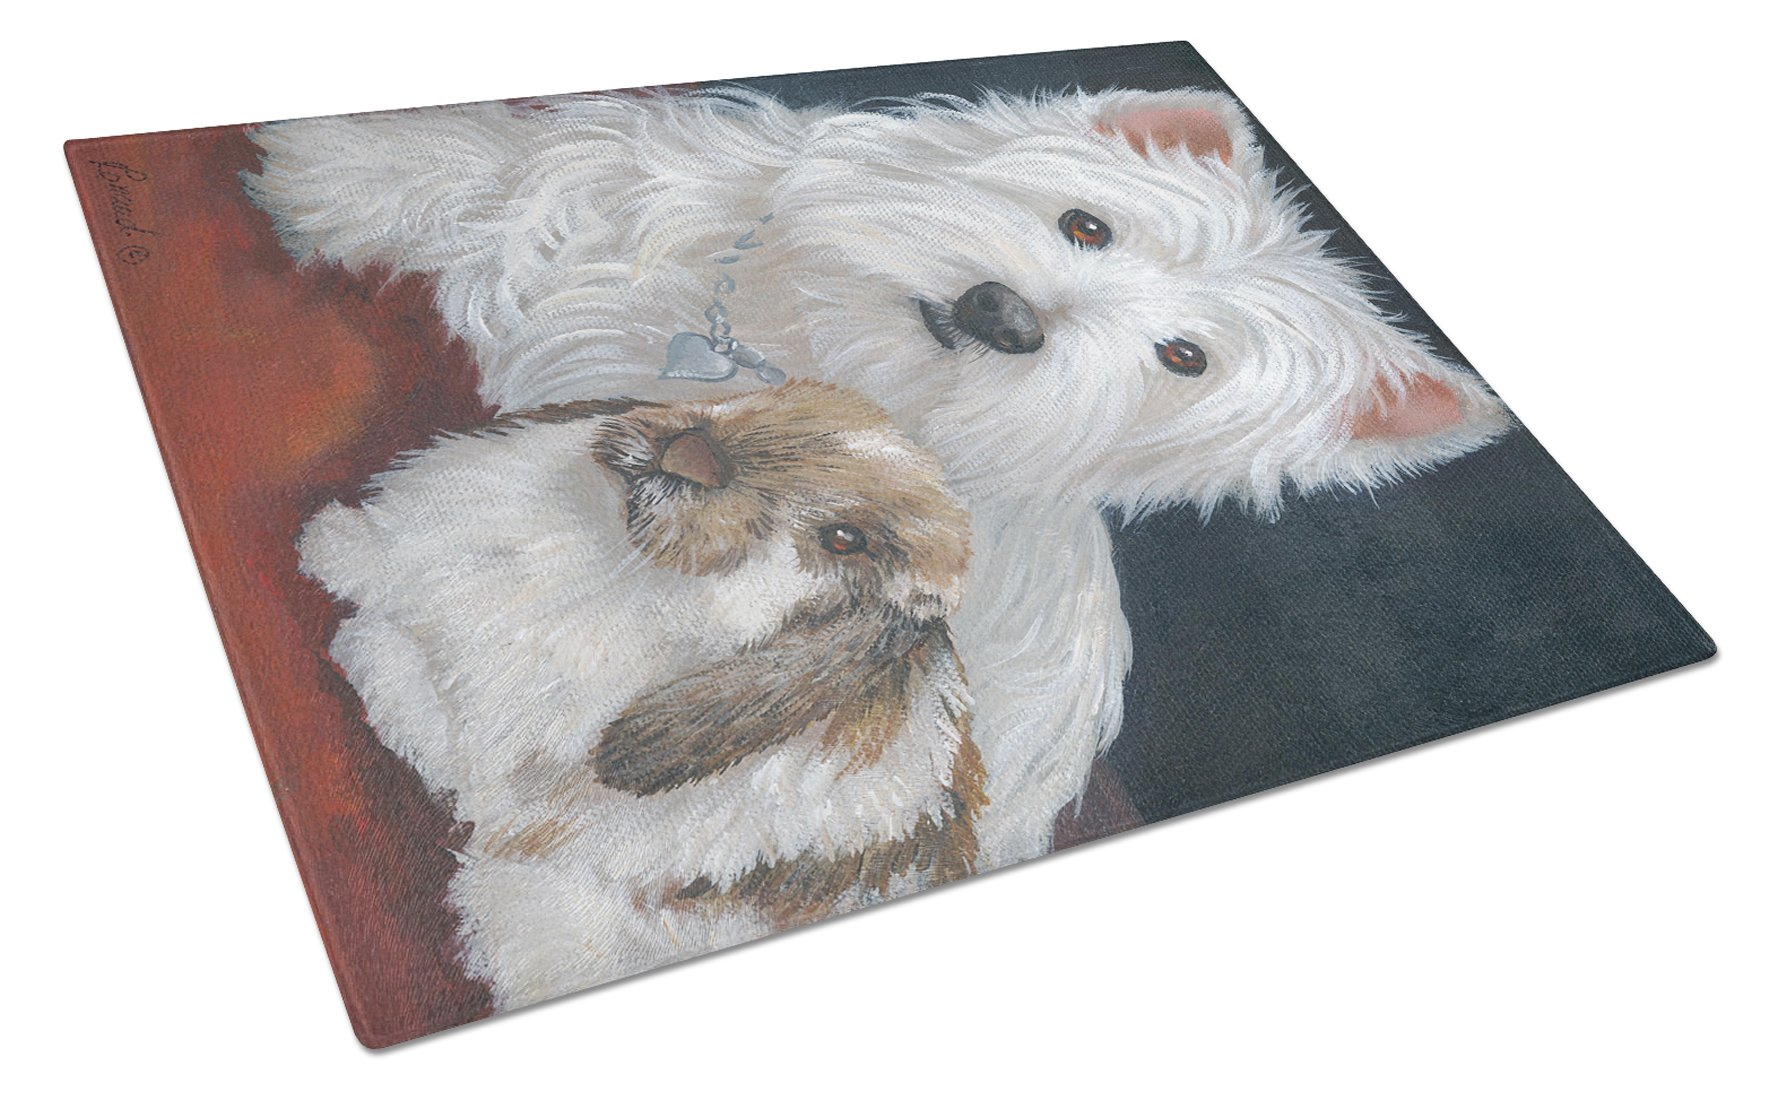 Westie Rabbit Harmony Glass Cutting Board Large PPP3207LCB by Caroline's Treasures